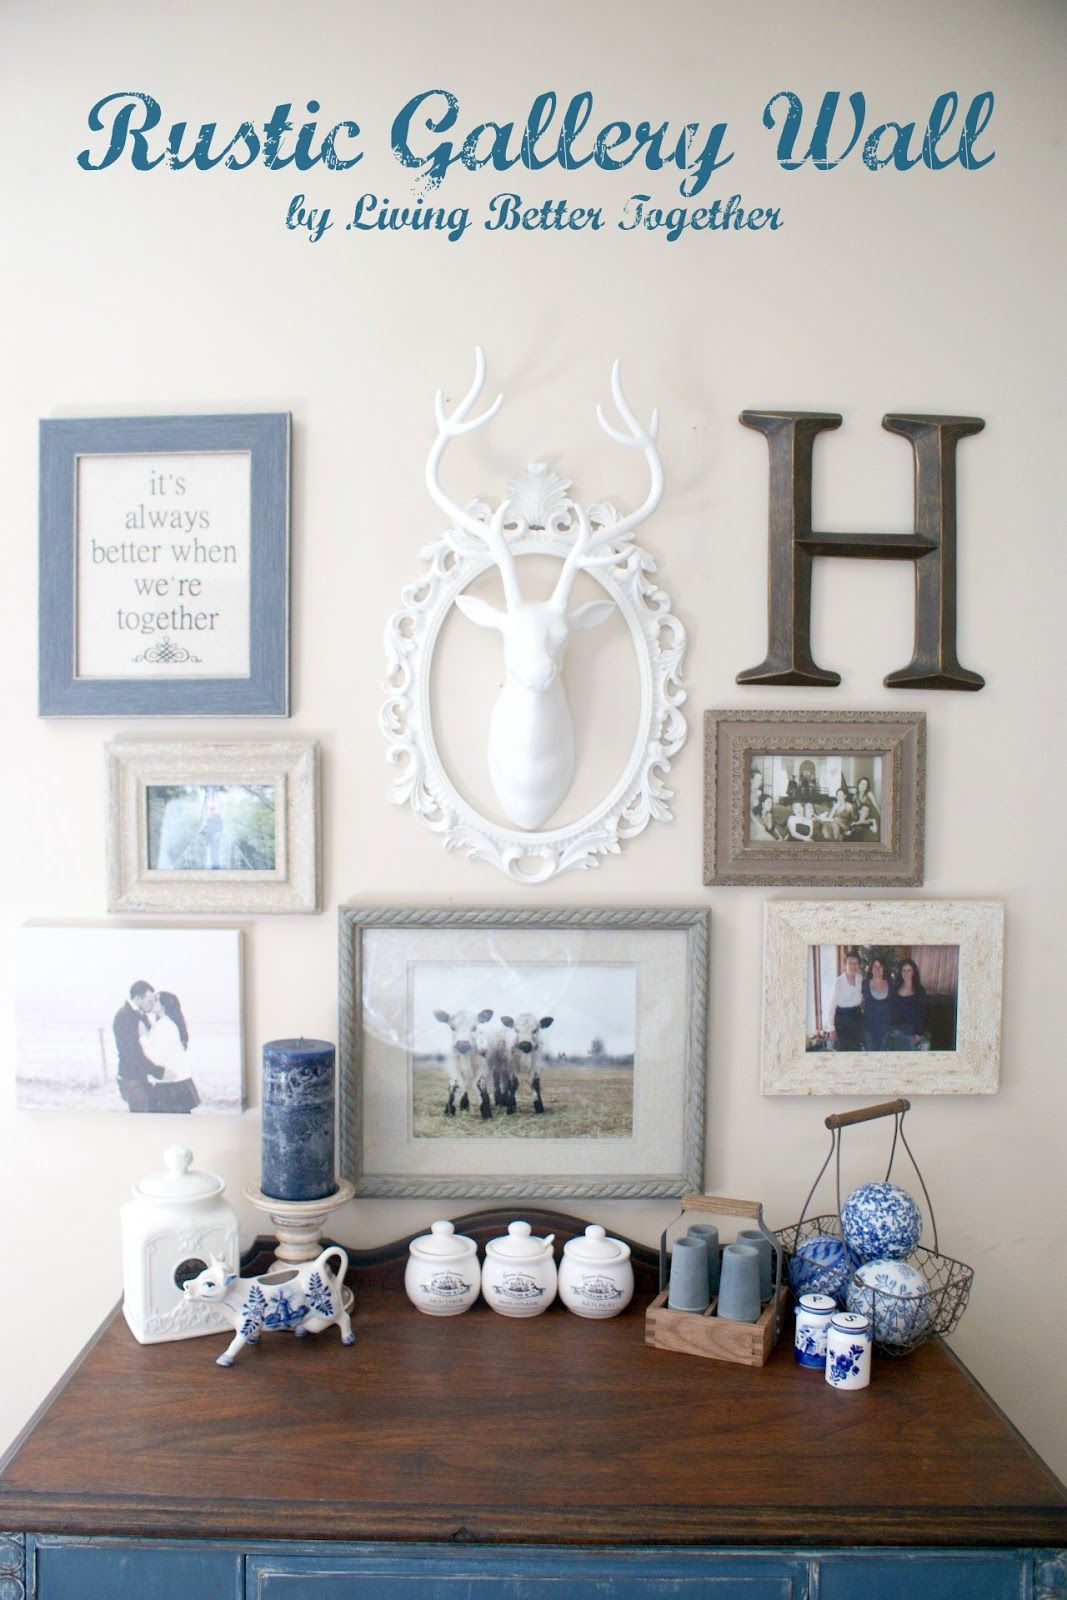 Rustic Gallery Wall Using Blues And Neutrals For A French Country Feel Www Livingbettertogether Com Rustic Gallery Wall Gallery Wall Diy Gallery Wall